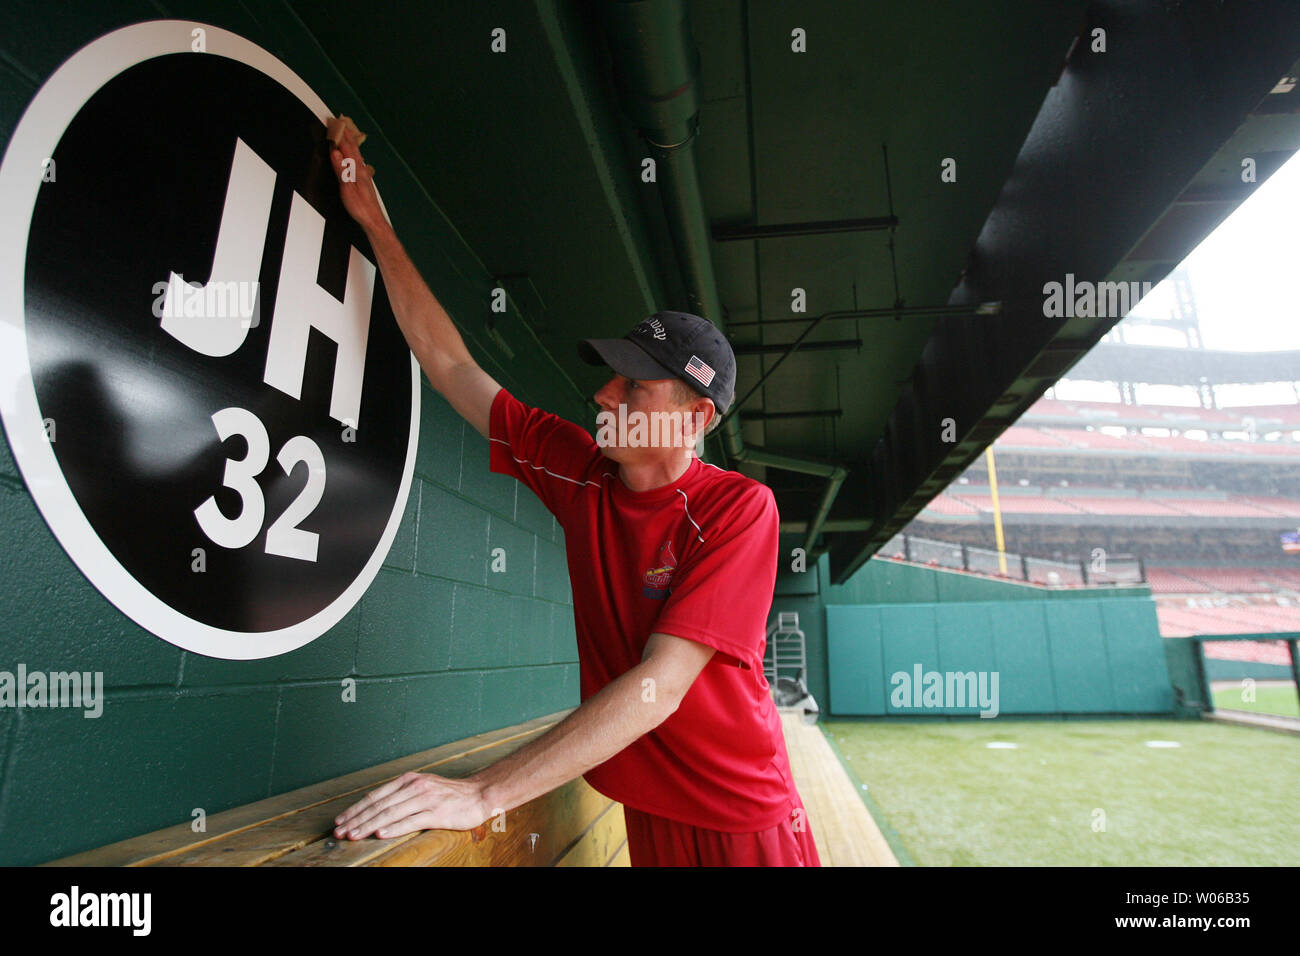 Busch Stadium grounds keeper Ryan Middleton wipes off a new sign in